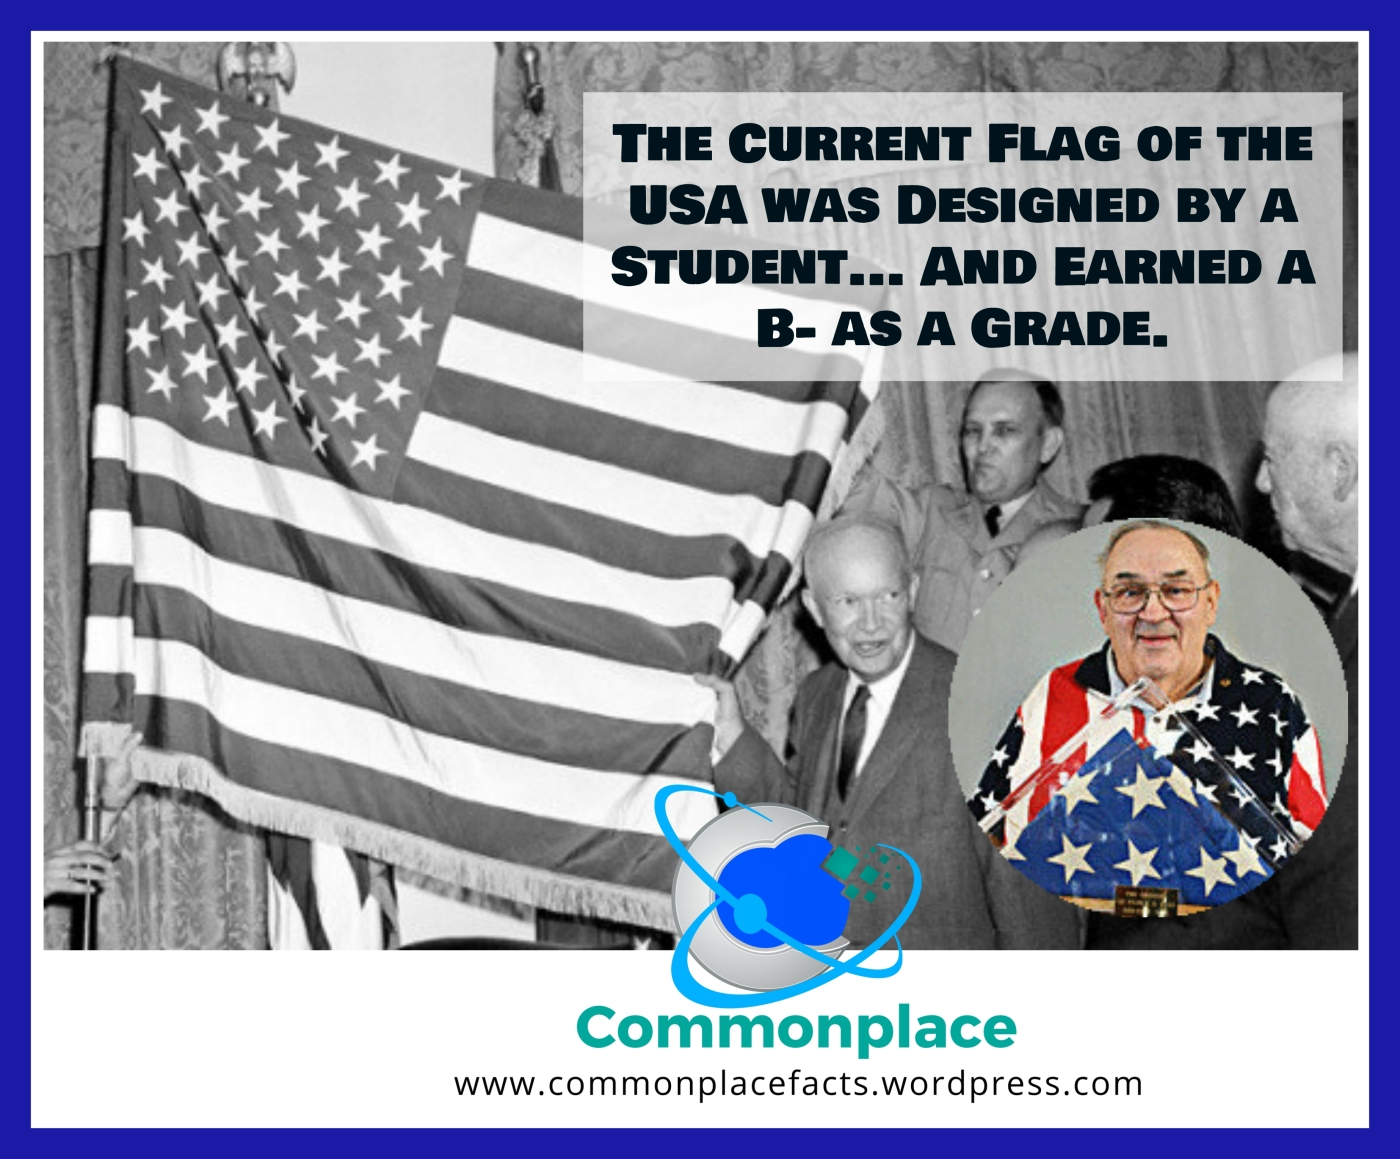 #flag #USA #school #grades #design